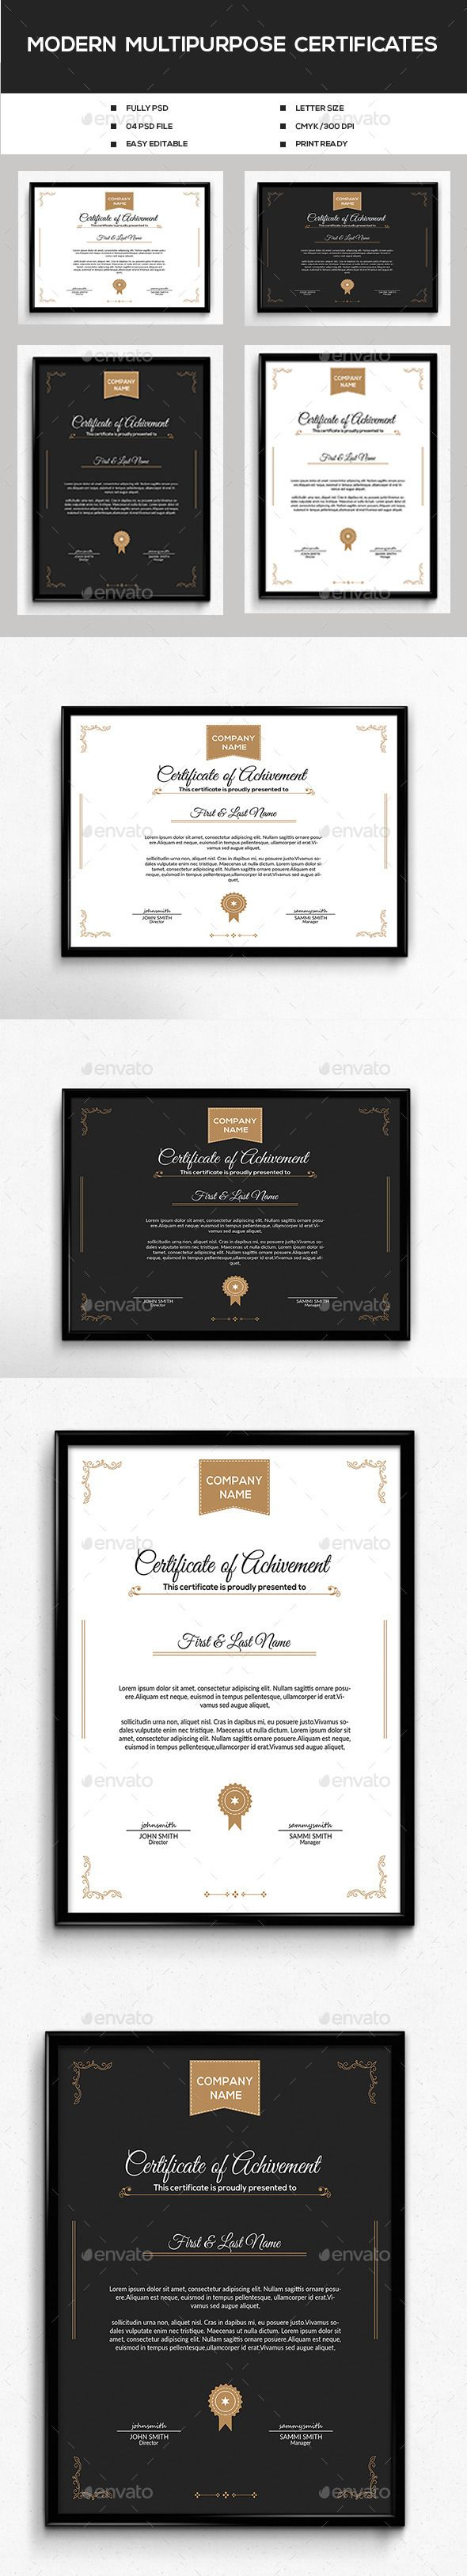 Modern multipurpose certificates template psd download here http modern multipurpose certificates template psd download here httpgraphicriver yelopaper Gallery